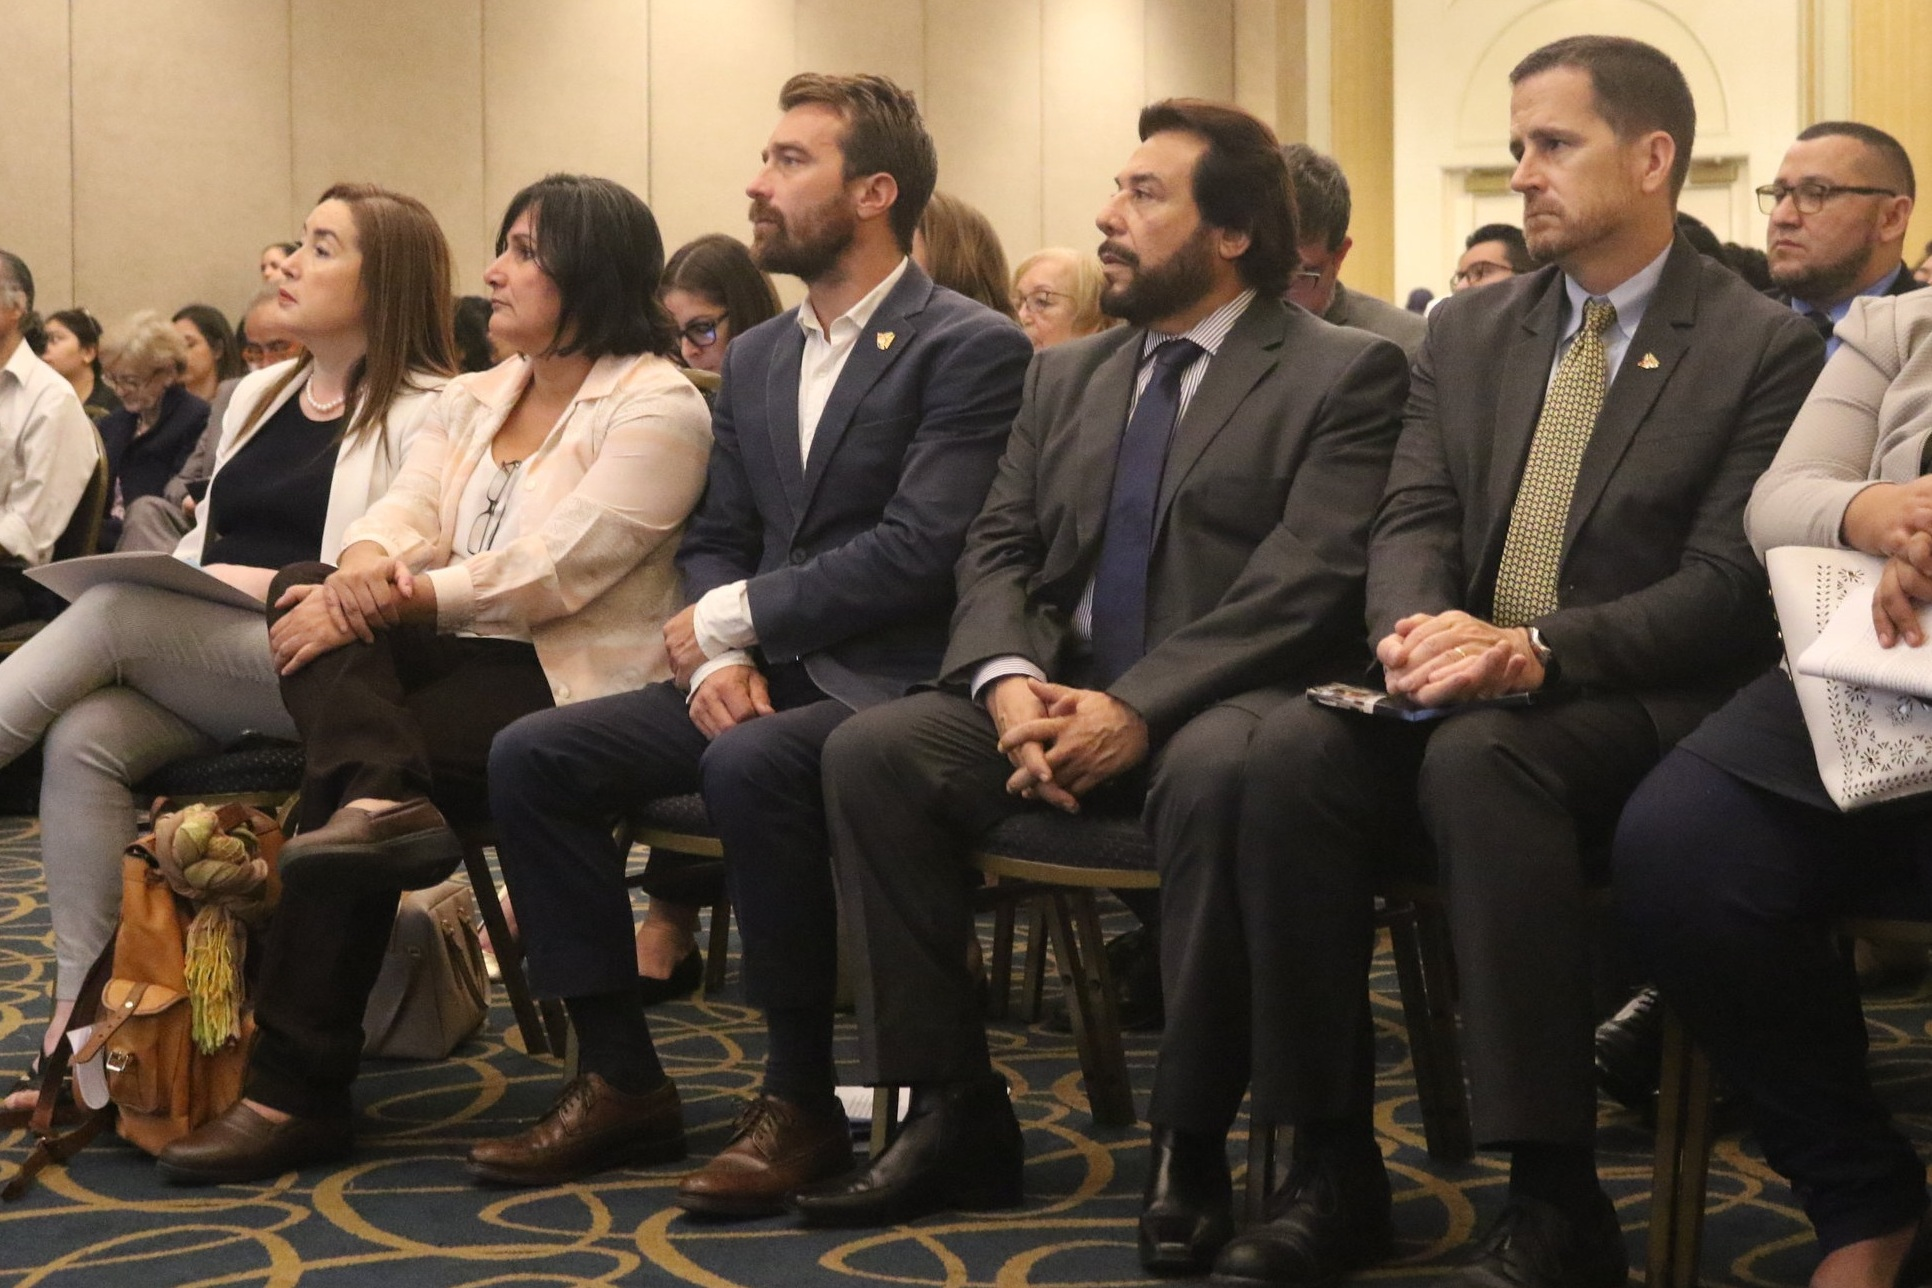 Left to right: EDUCO Country Director Alicia Ávila, Cristosal Chief Program Officer Celia Medrano, Cristosal Executive Director Noah Bullock, Vice President of El Salvador Felix Ulloa, President of the Cristosal Board of Directors Scott Pentzer